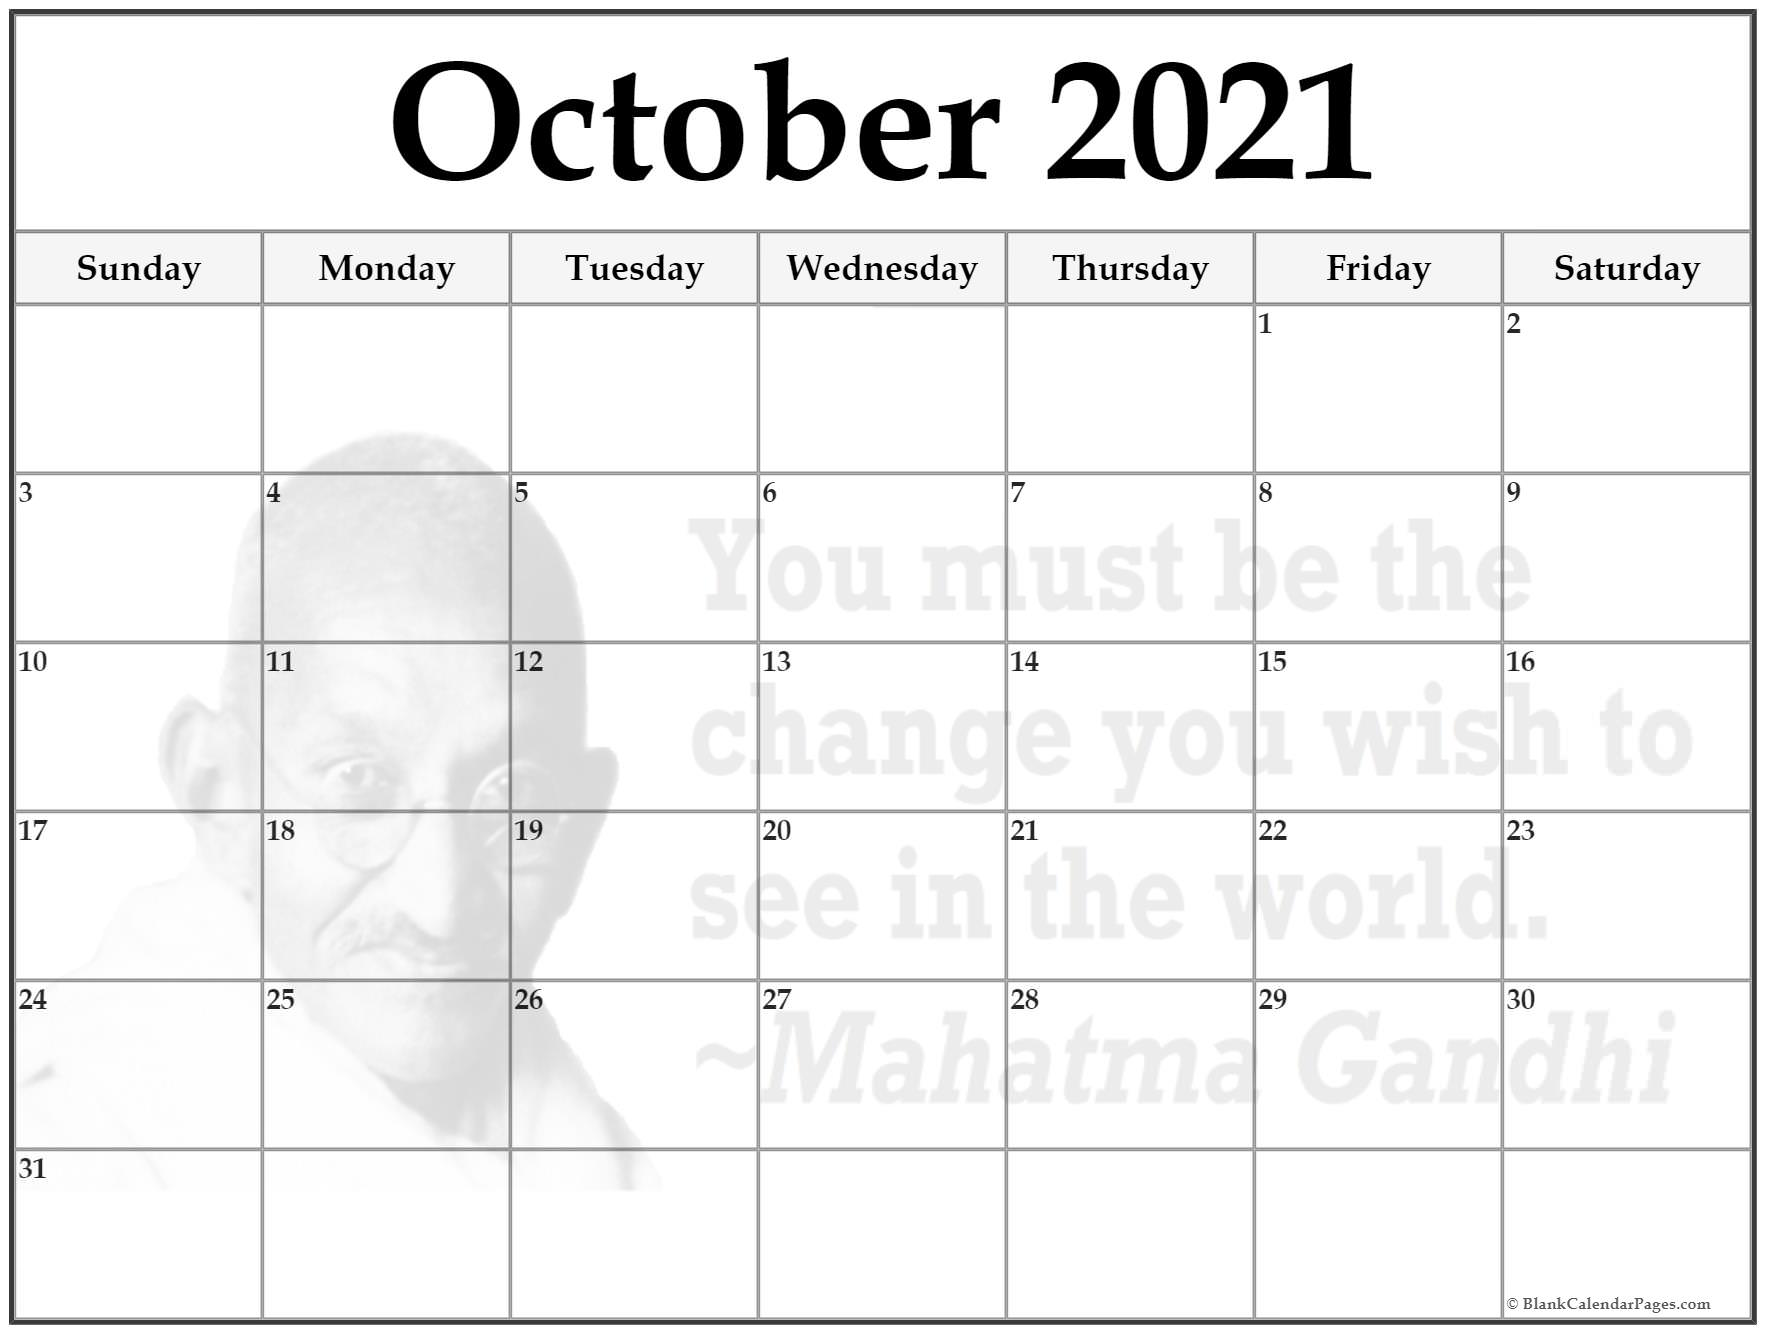 October 2021 monthly calendar template. You must be the change you wish to see in the world. ~Mahatma Gandhi